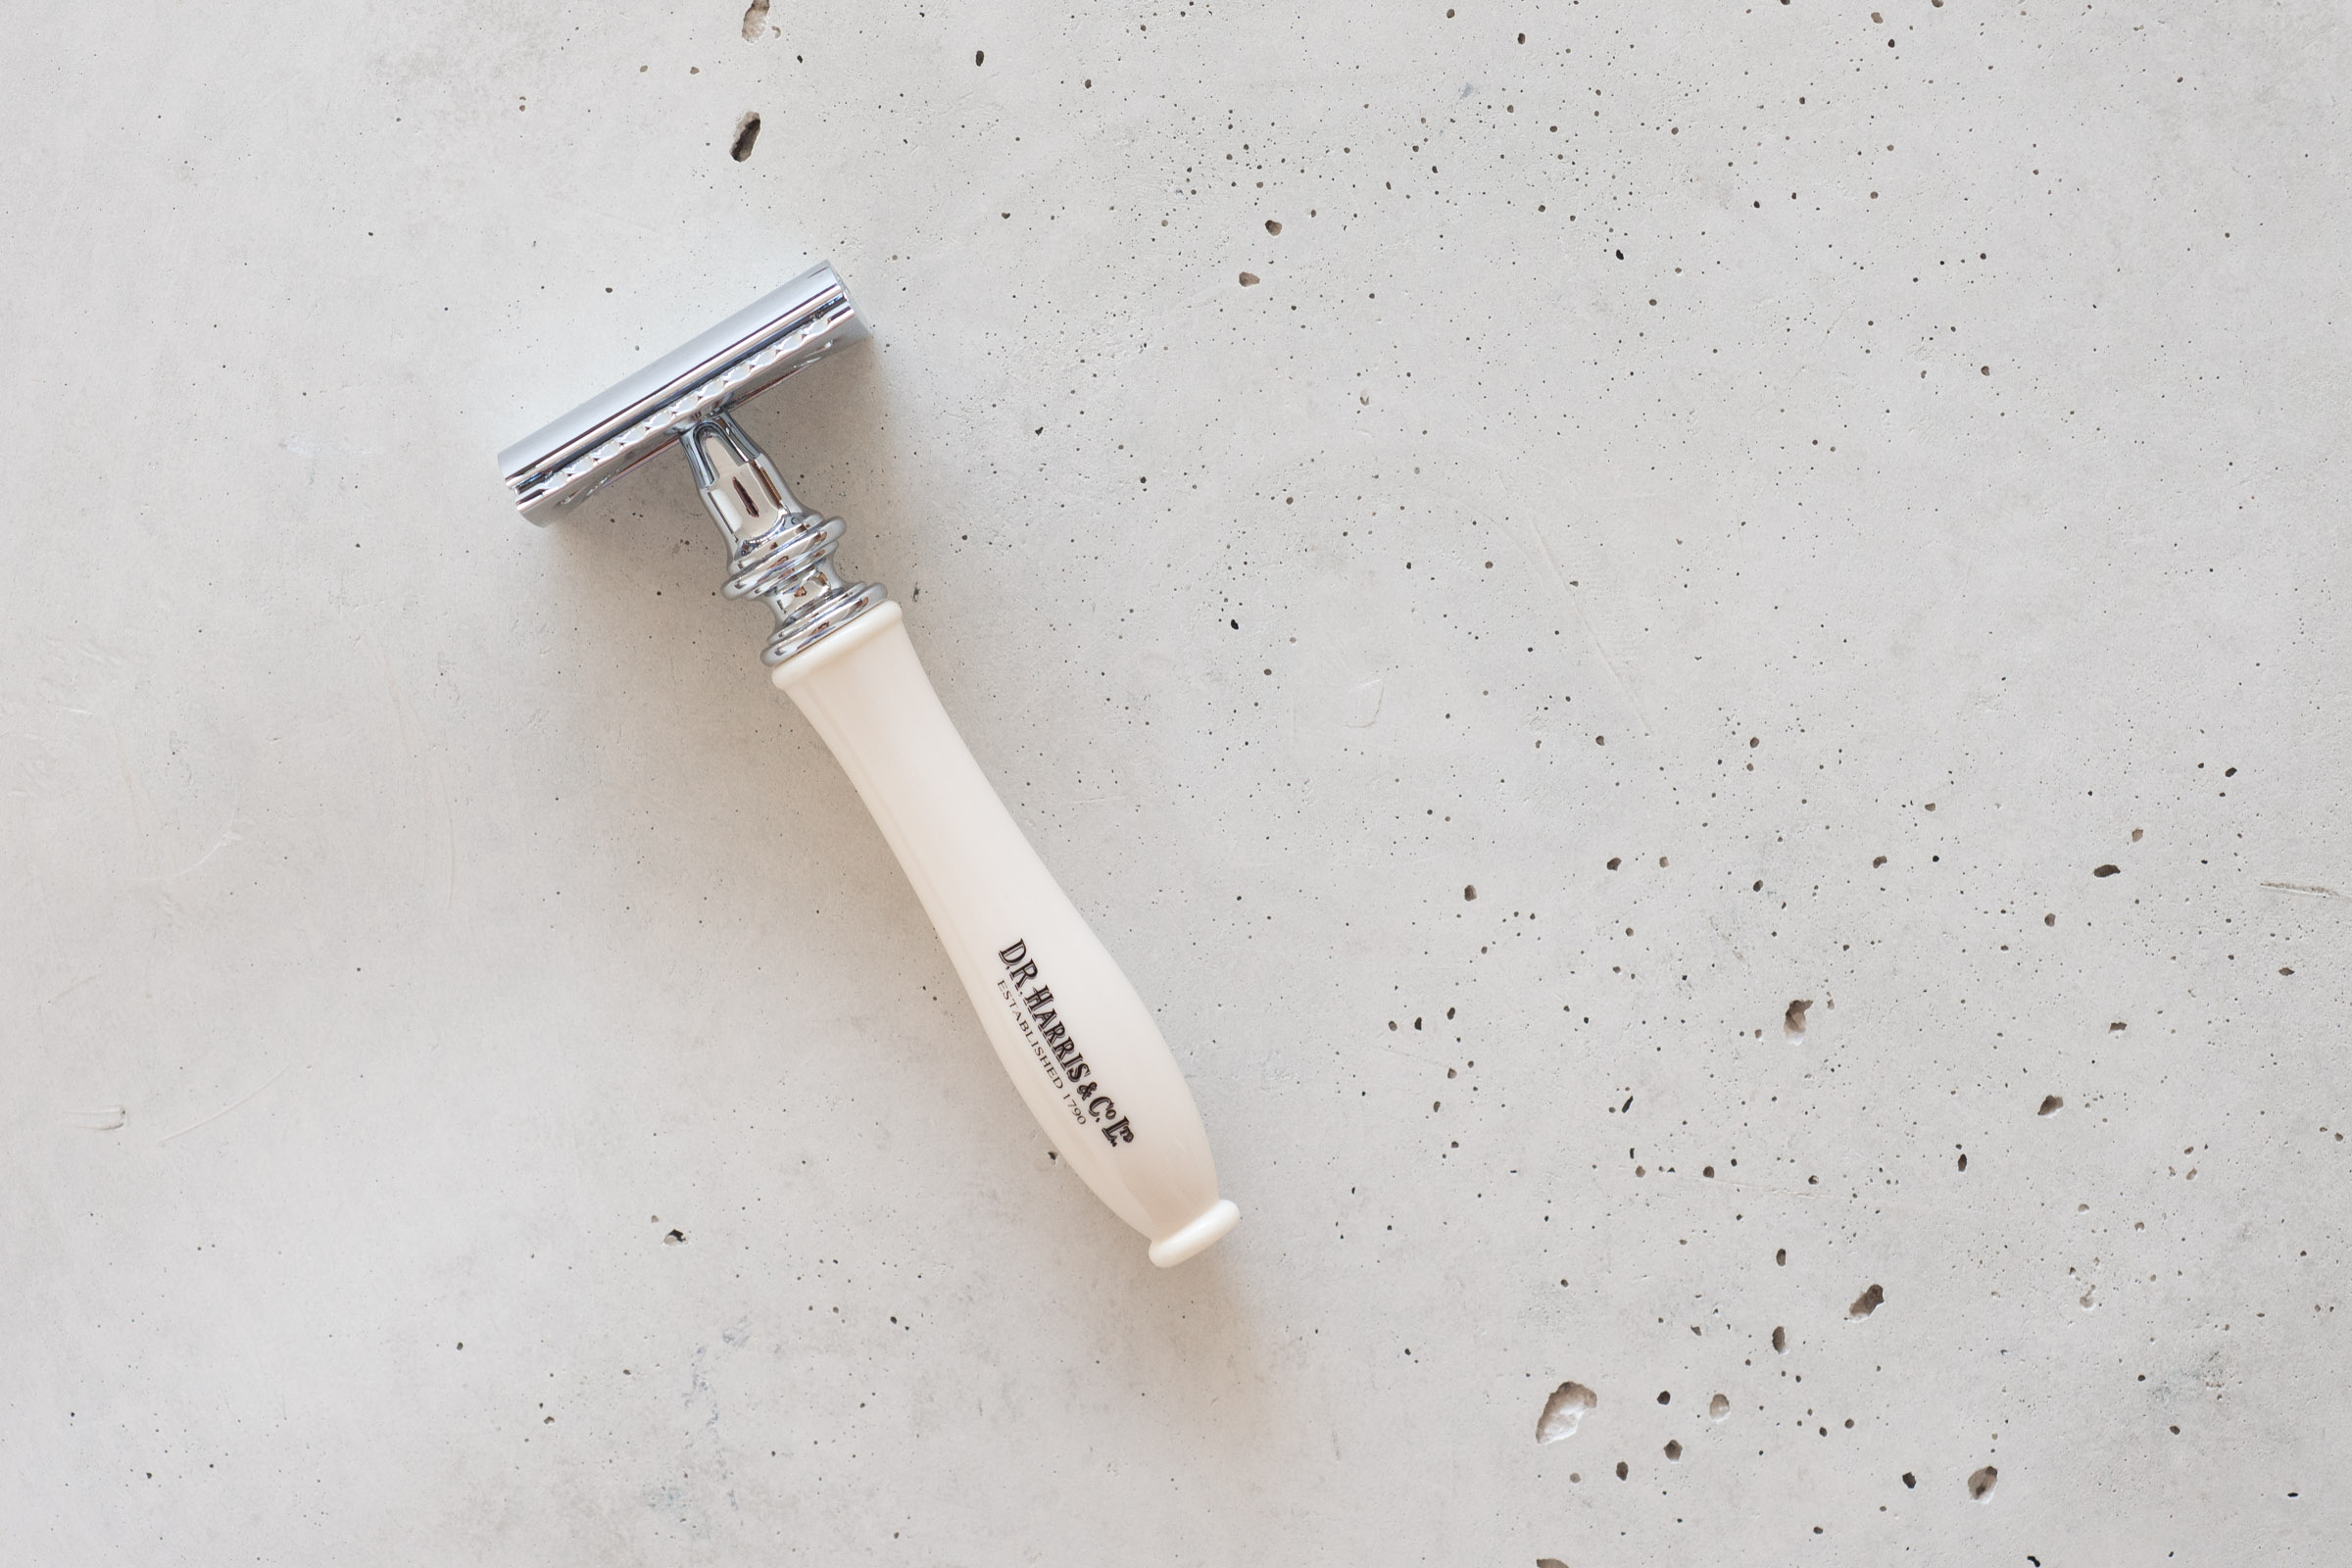 Men's Shaving Tips | How To Get The Most From Your Shave